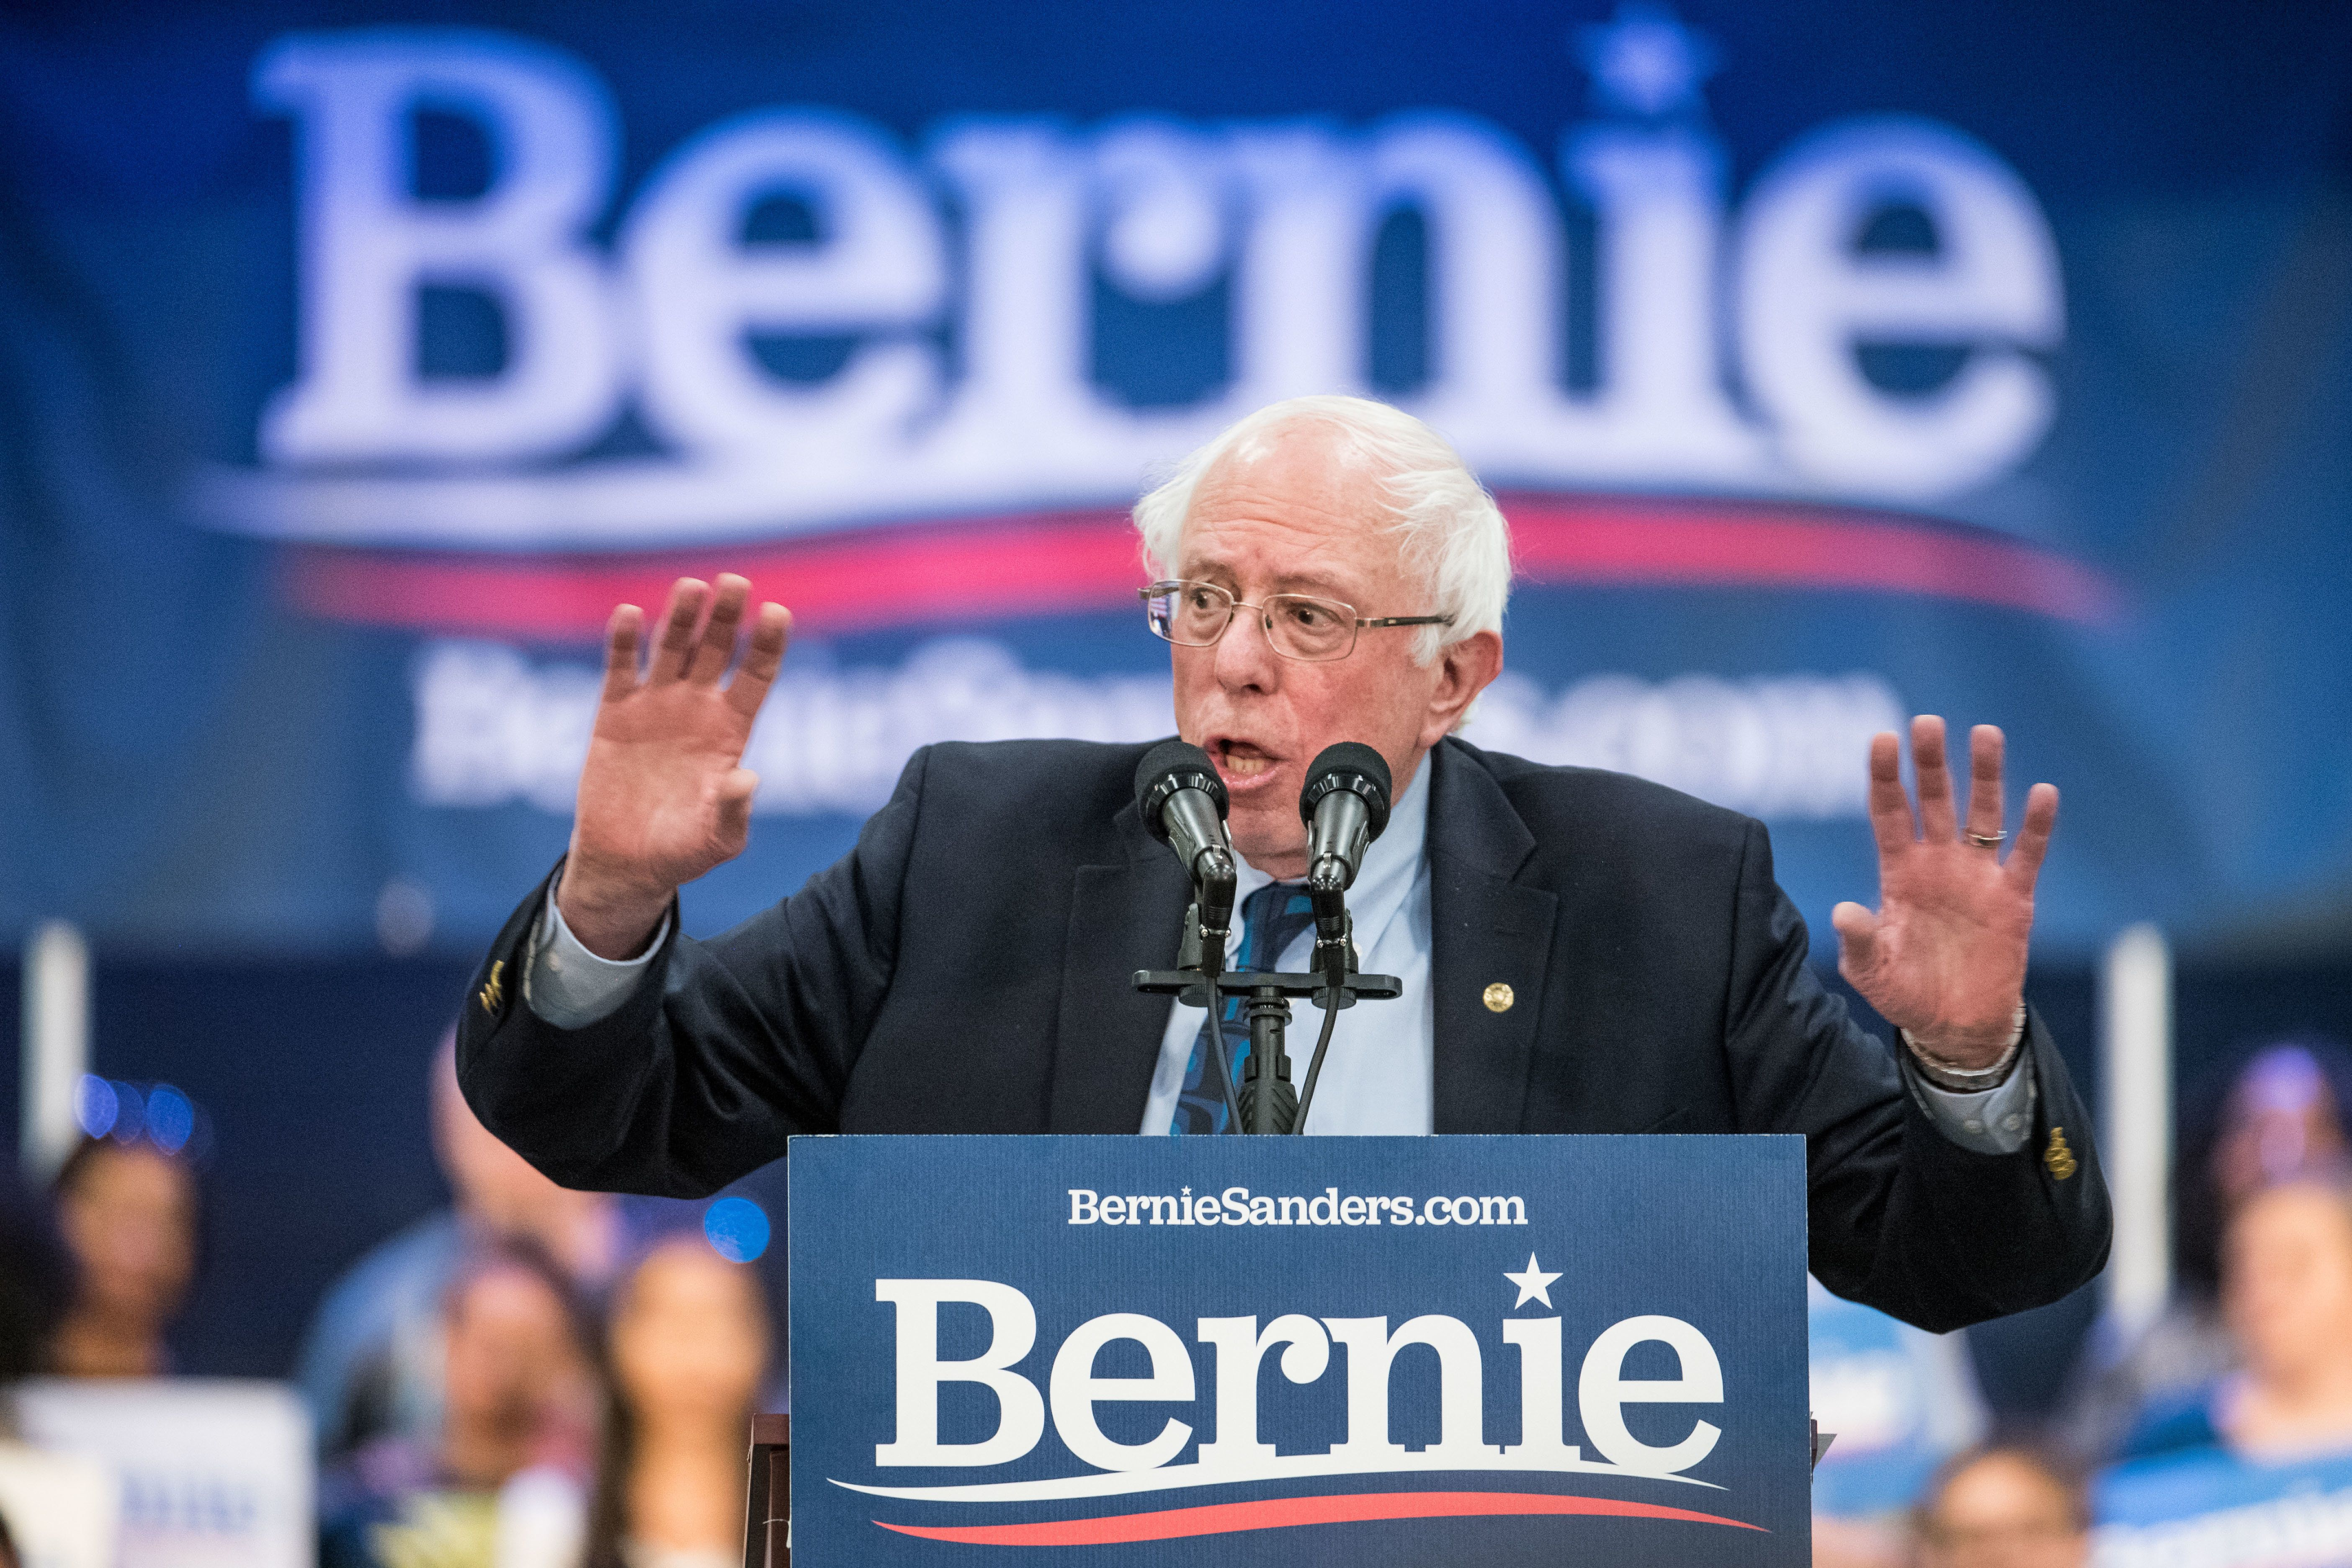 NORTH CHARLESTON, SC - MARCH 14:  2020 Democratic presidential candidate U.S. Sen. Bernie Sanders (I-VT) addresses the crowd at the Royal family Life Center on March 14, 2019 in North Charleston, South Carolina. Sanders received 26 percent of the South Carolina Democratic vote in the 2020 race, eventually losing the nomination to Hillary Clinton. (Photo by Sean Rayford/Getty Images)